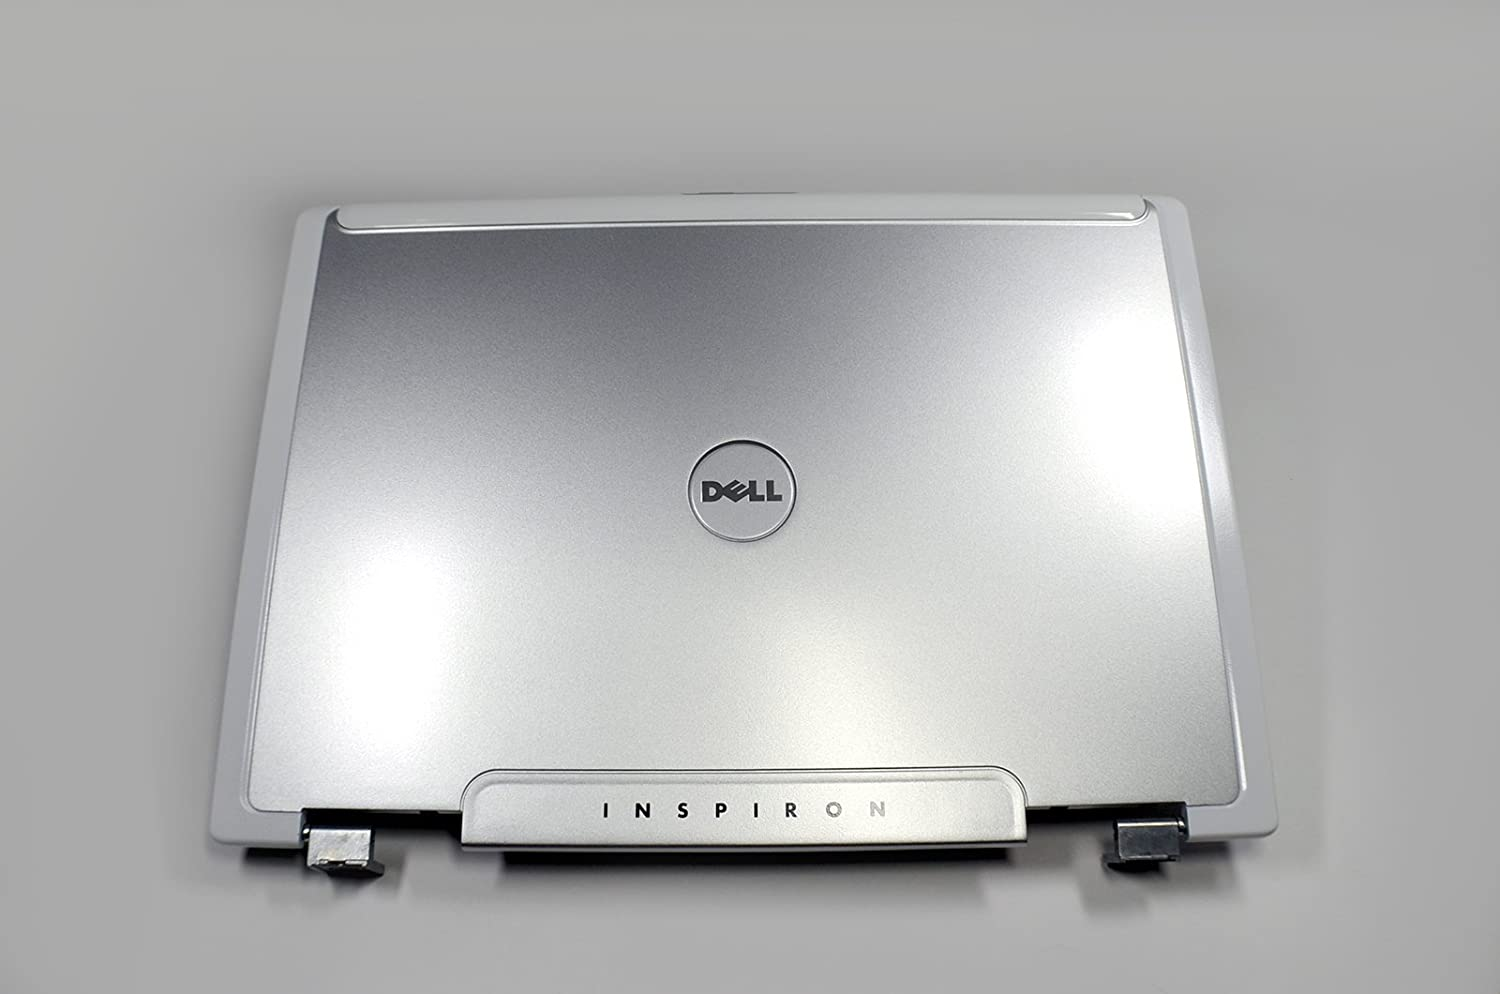 Dell New Genuine OEM Inspiron E1705 9400 LCD Rear Back Top Cover W/Hinge LCD LID DF050 Monitor Screen Panel Housing Enclosure Assembly